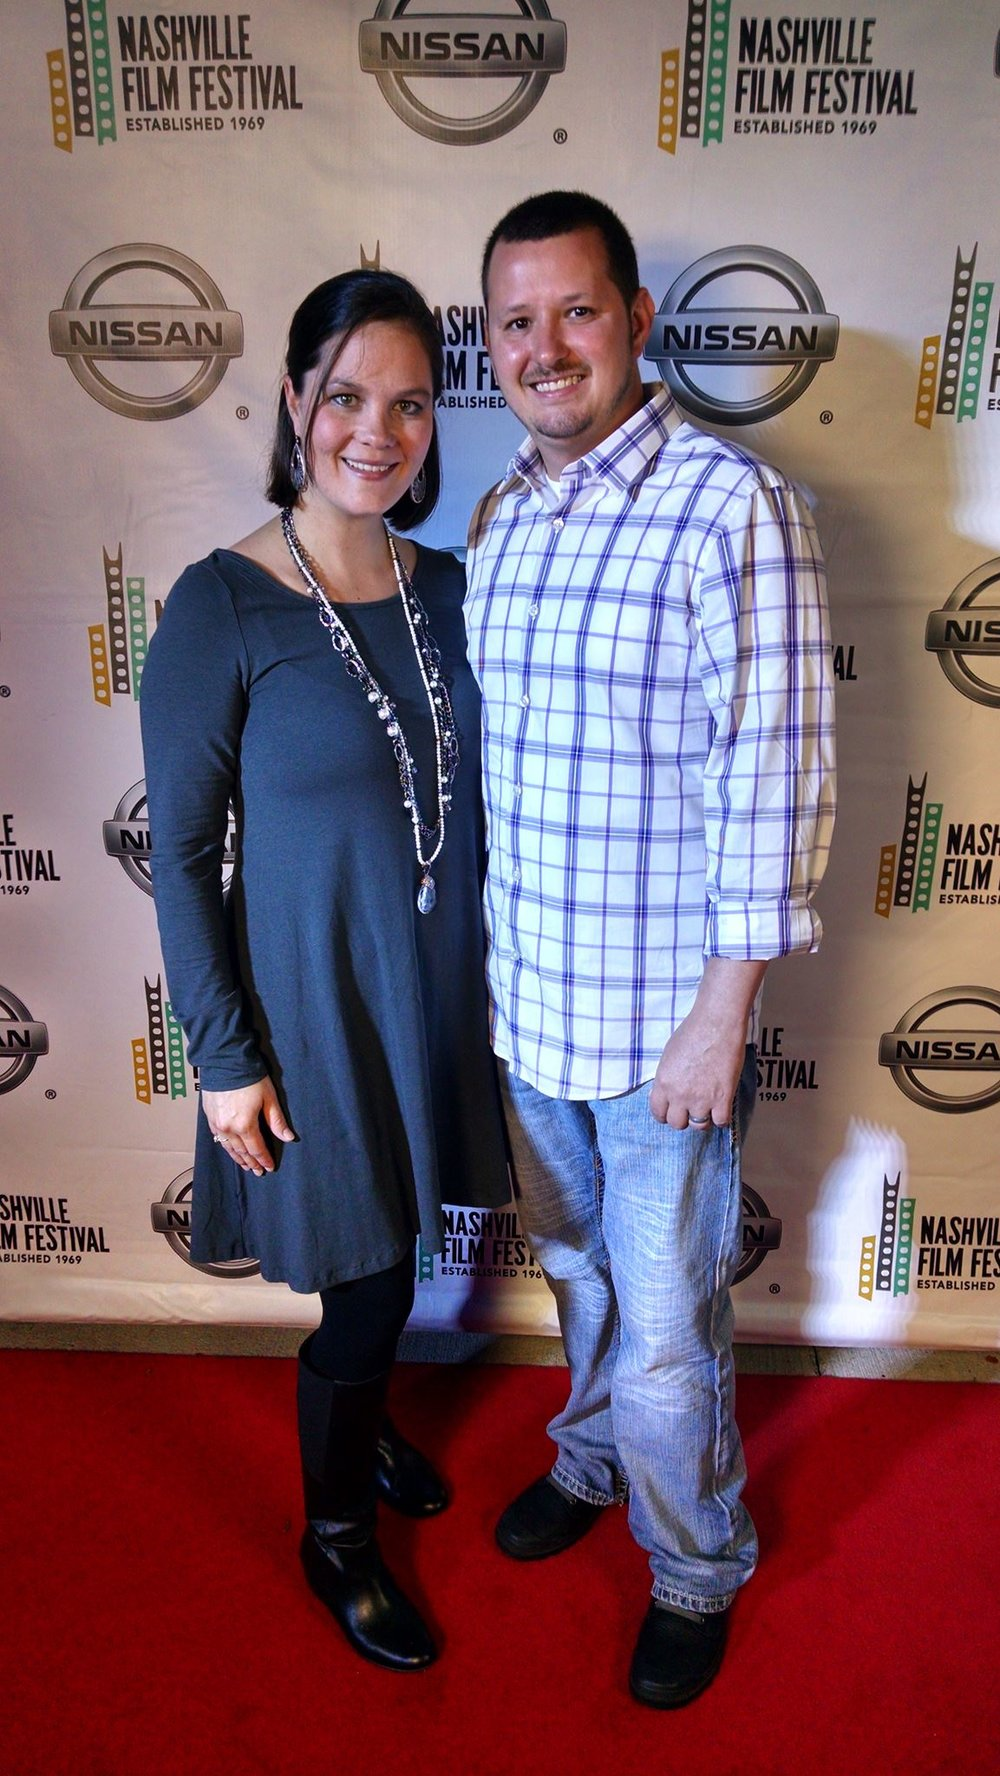 Walking the Red Carpet with my wife at the Nashville Film Festival 2015